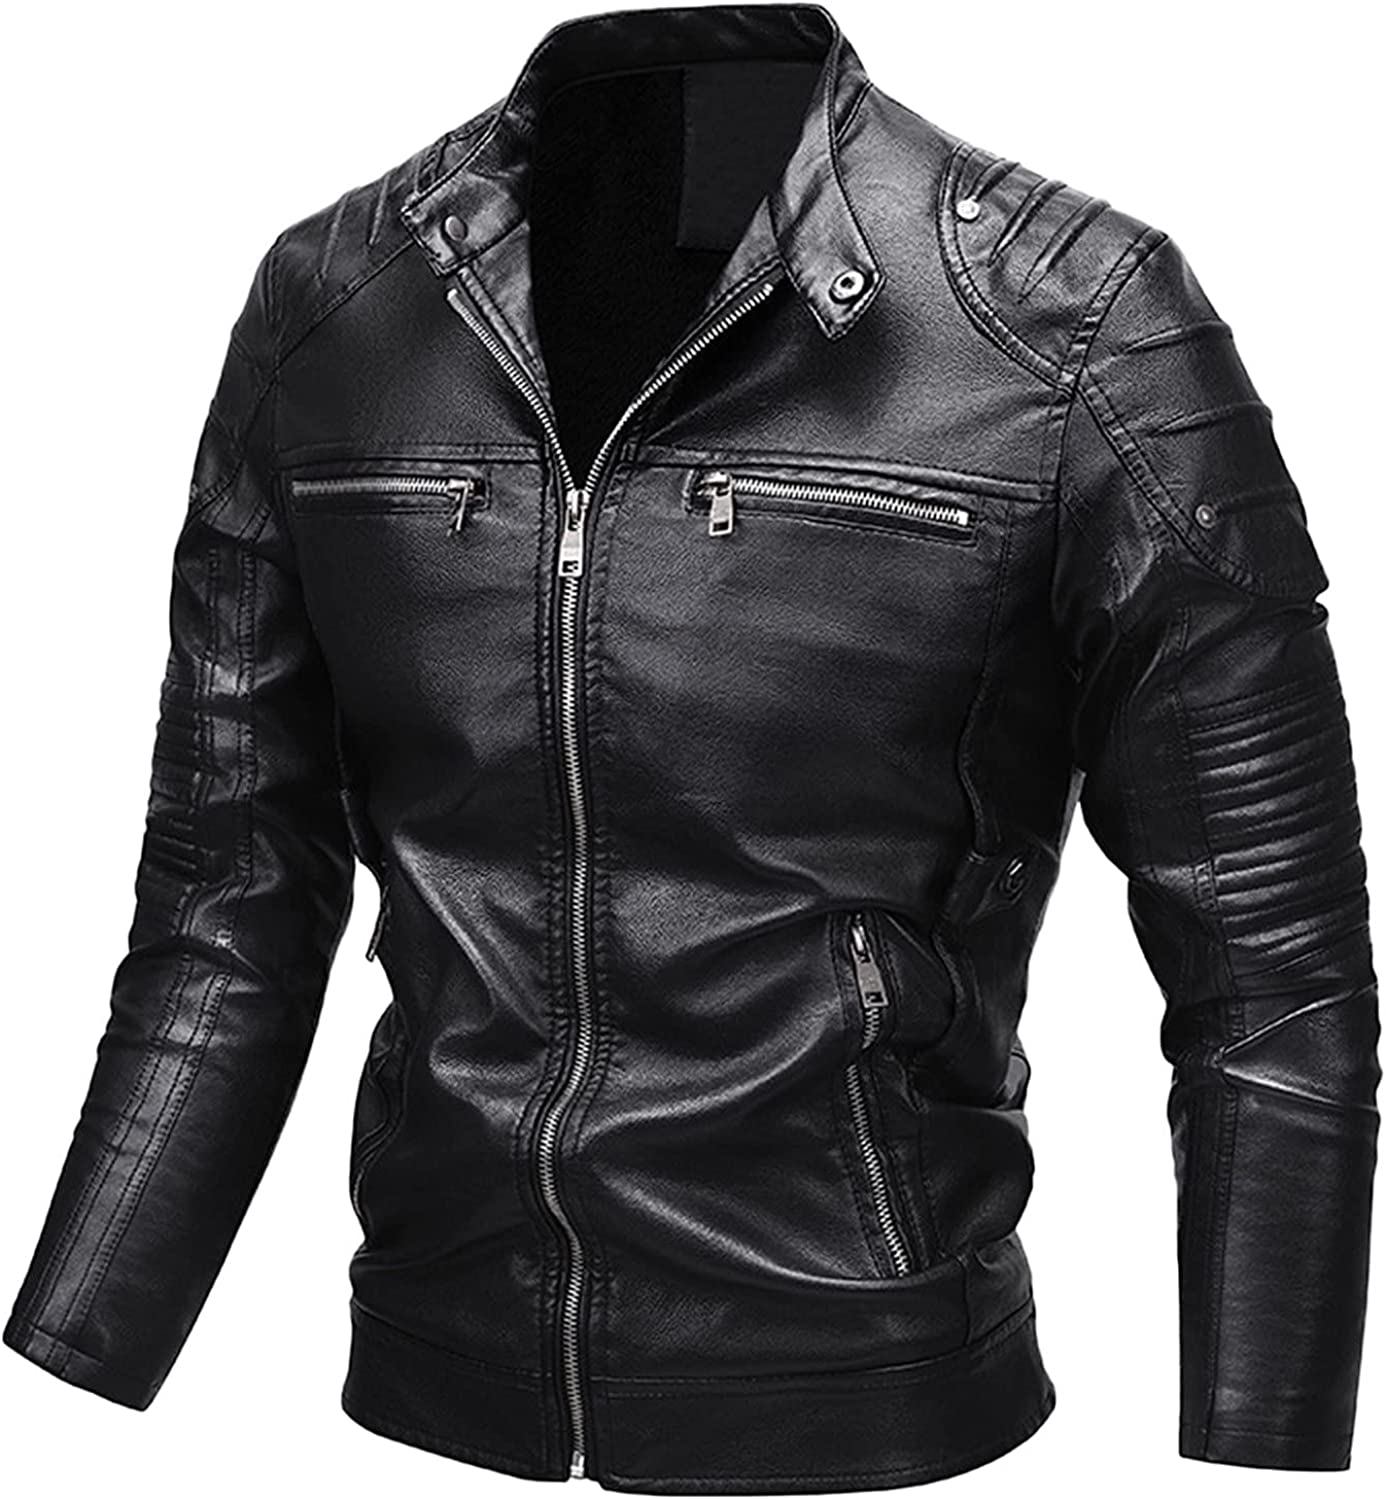 Men's Vintage Stand Collar Leather Jacket Motorcycle PU Faux Leather Outwear